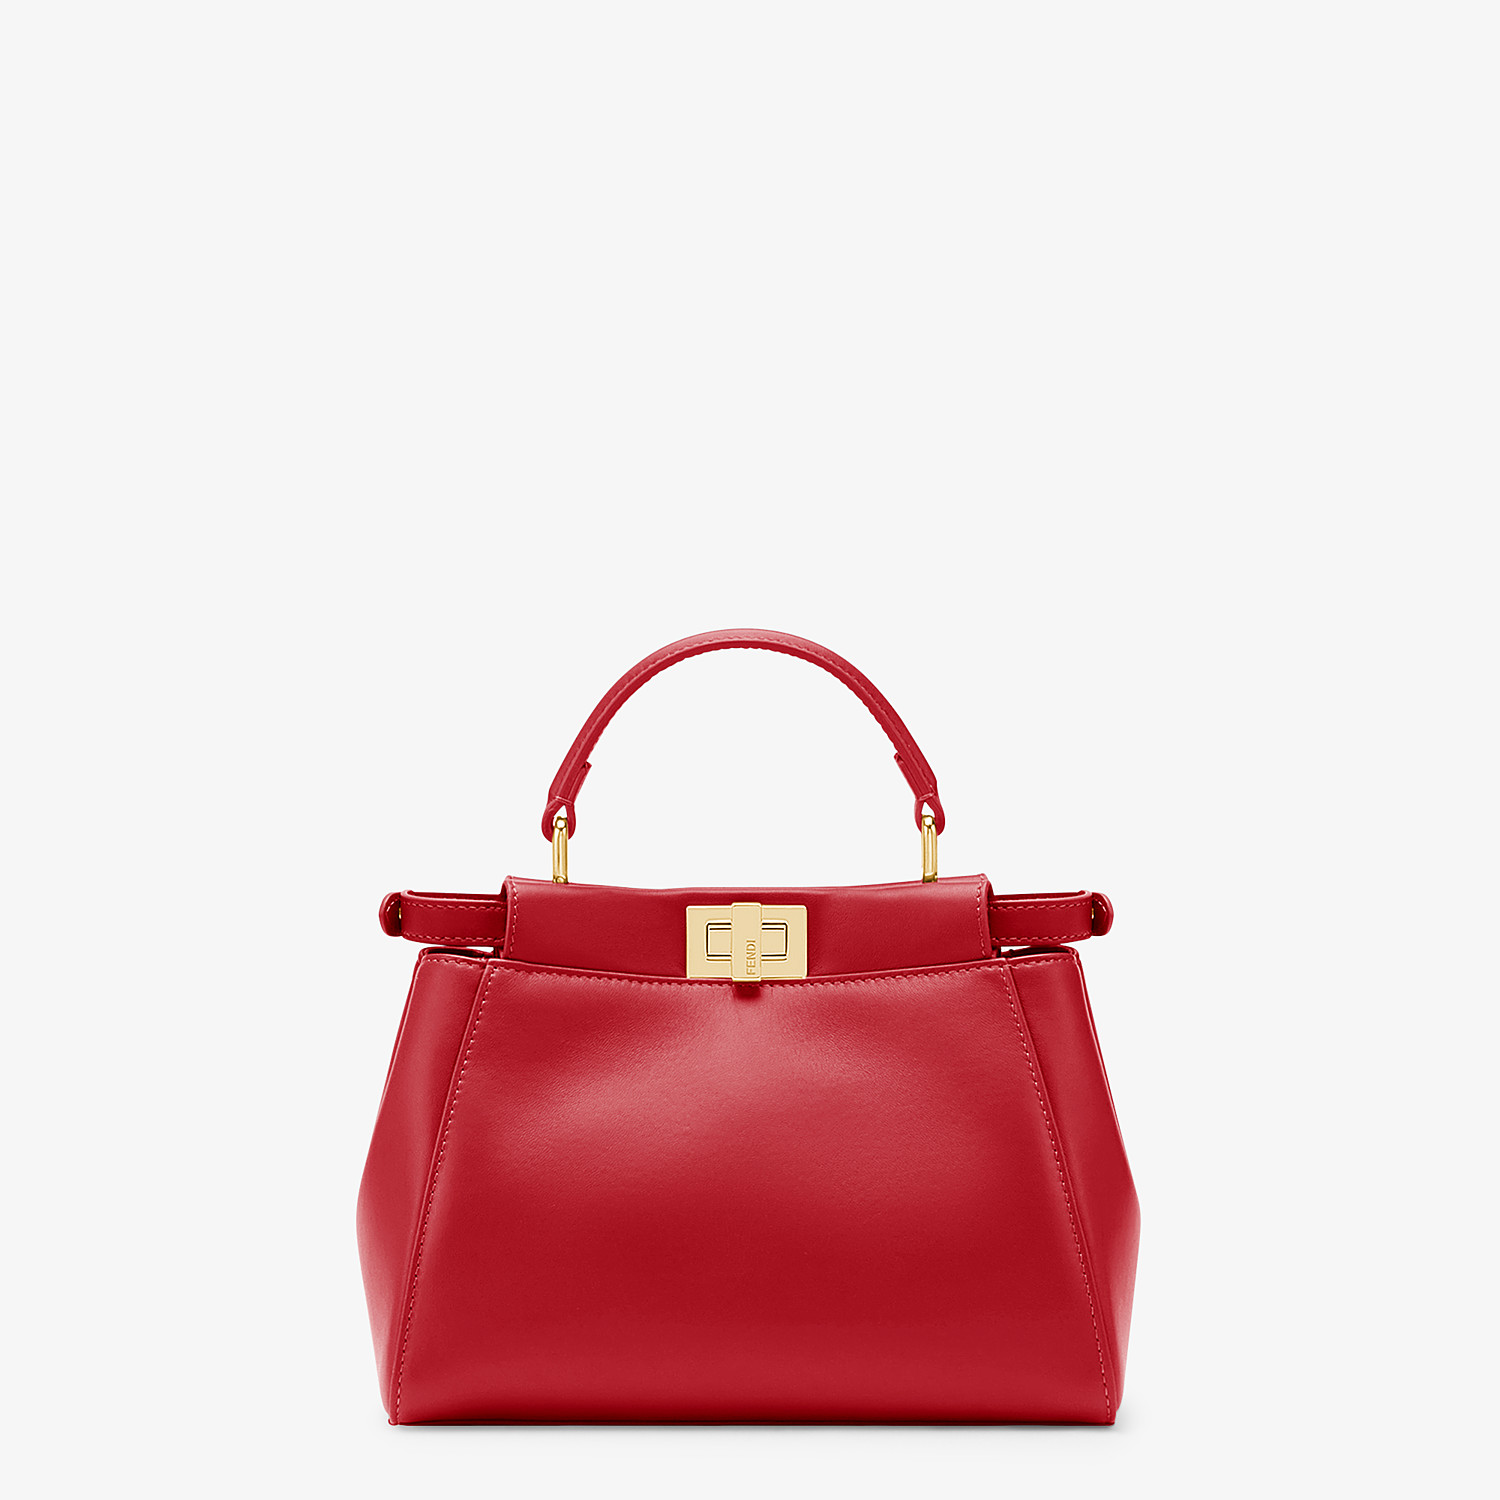 FENDI PEEKABOO ICONIC MINI - Red leather bag - view 3 detail